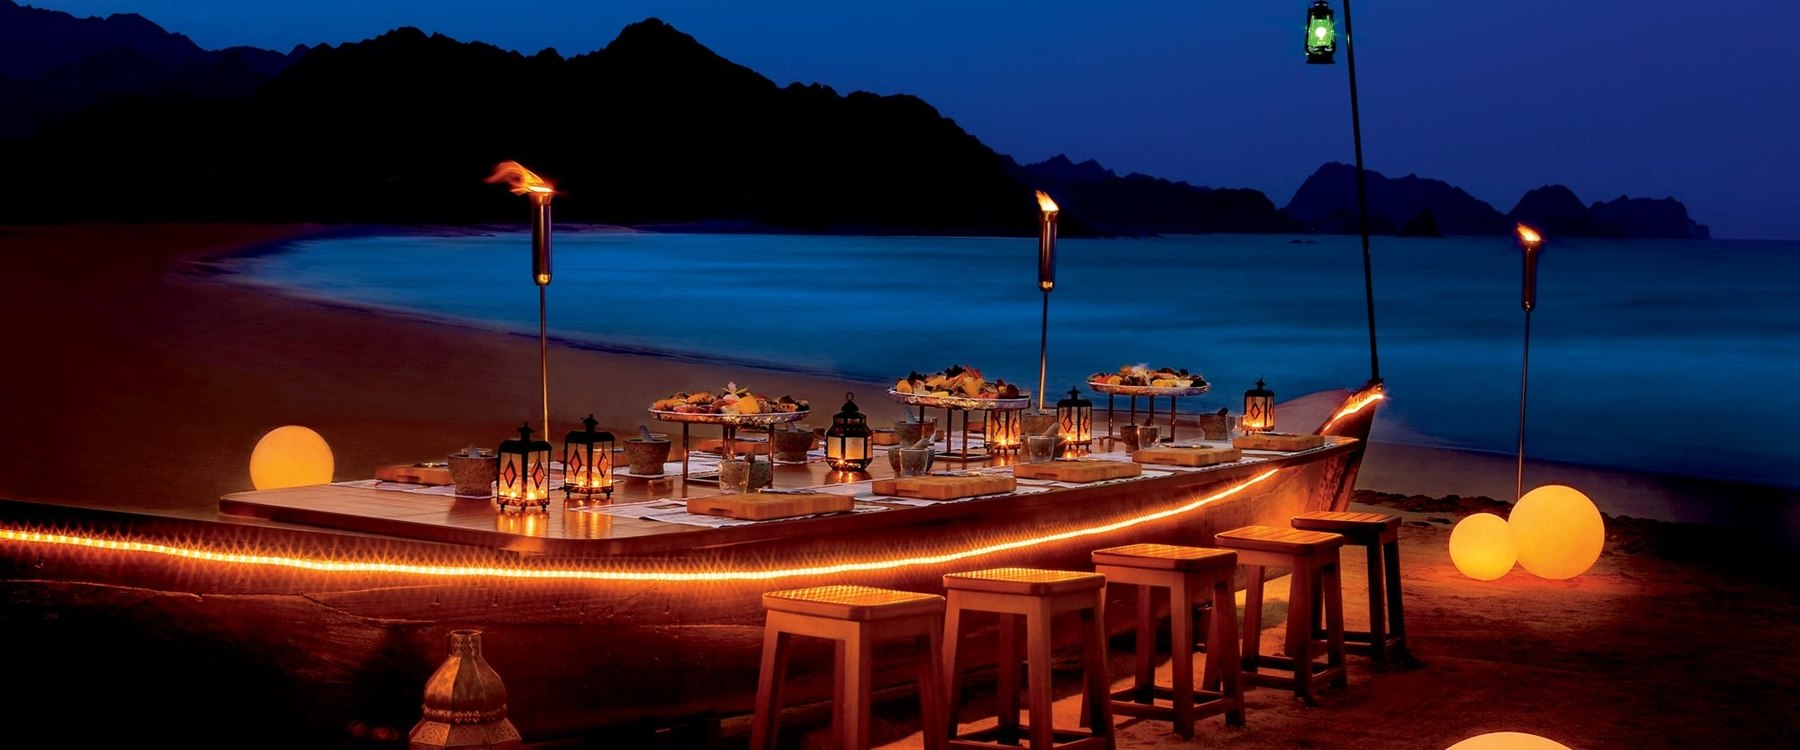 Beach Pavilion Dining at Al Bustan Palace, A Ritz-Carlton Hotel, Muscat